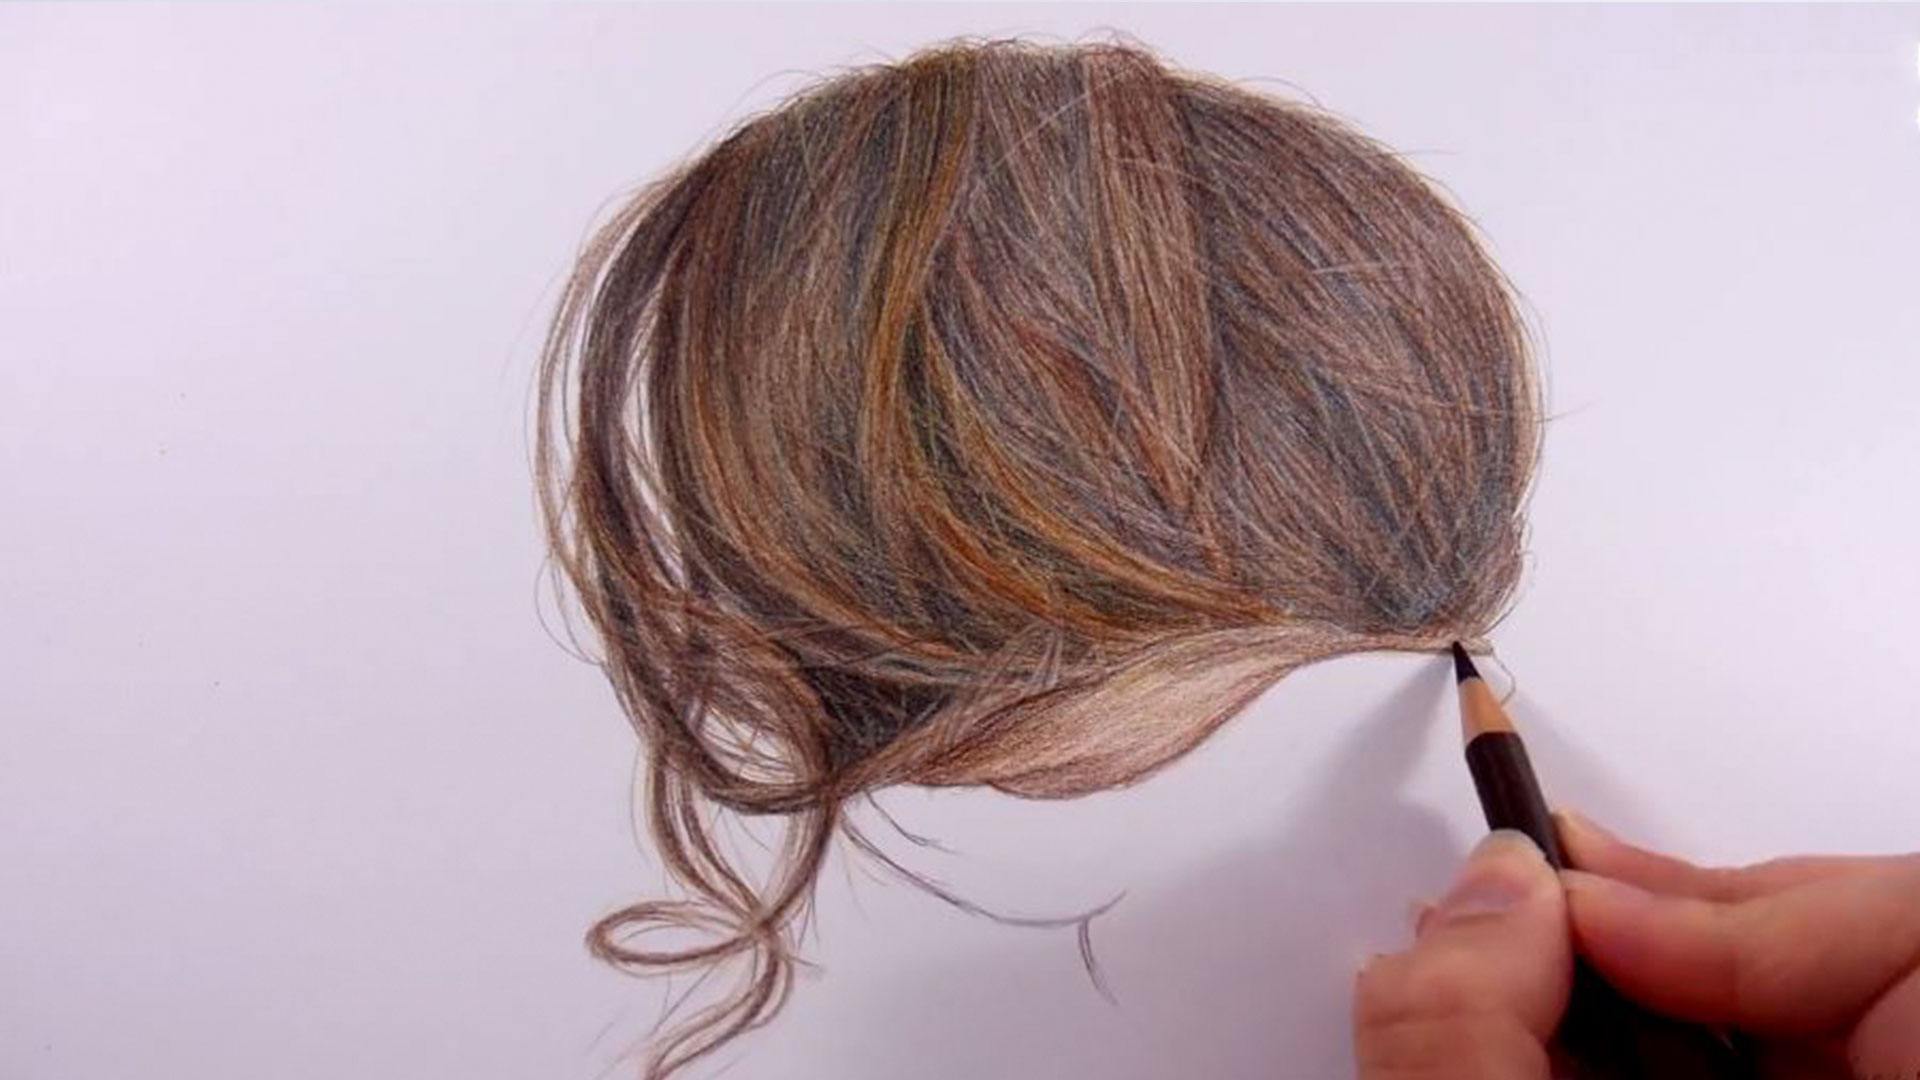 Unbelievably Realistic Hair Drawn Using 8 Colored Pencils | Bored ...